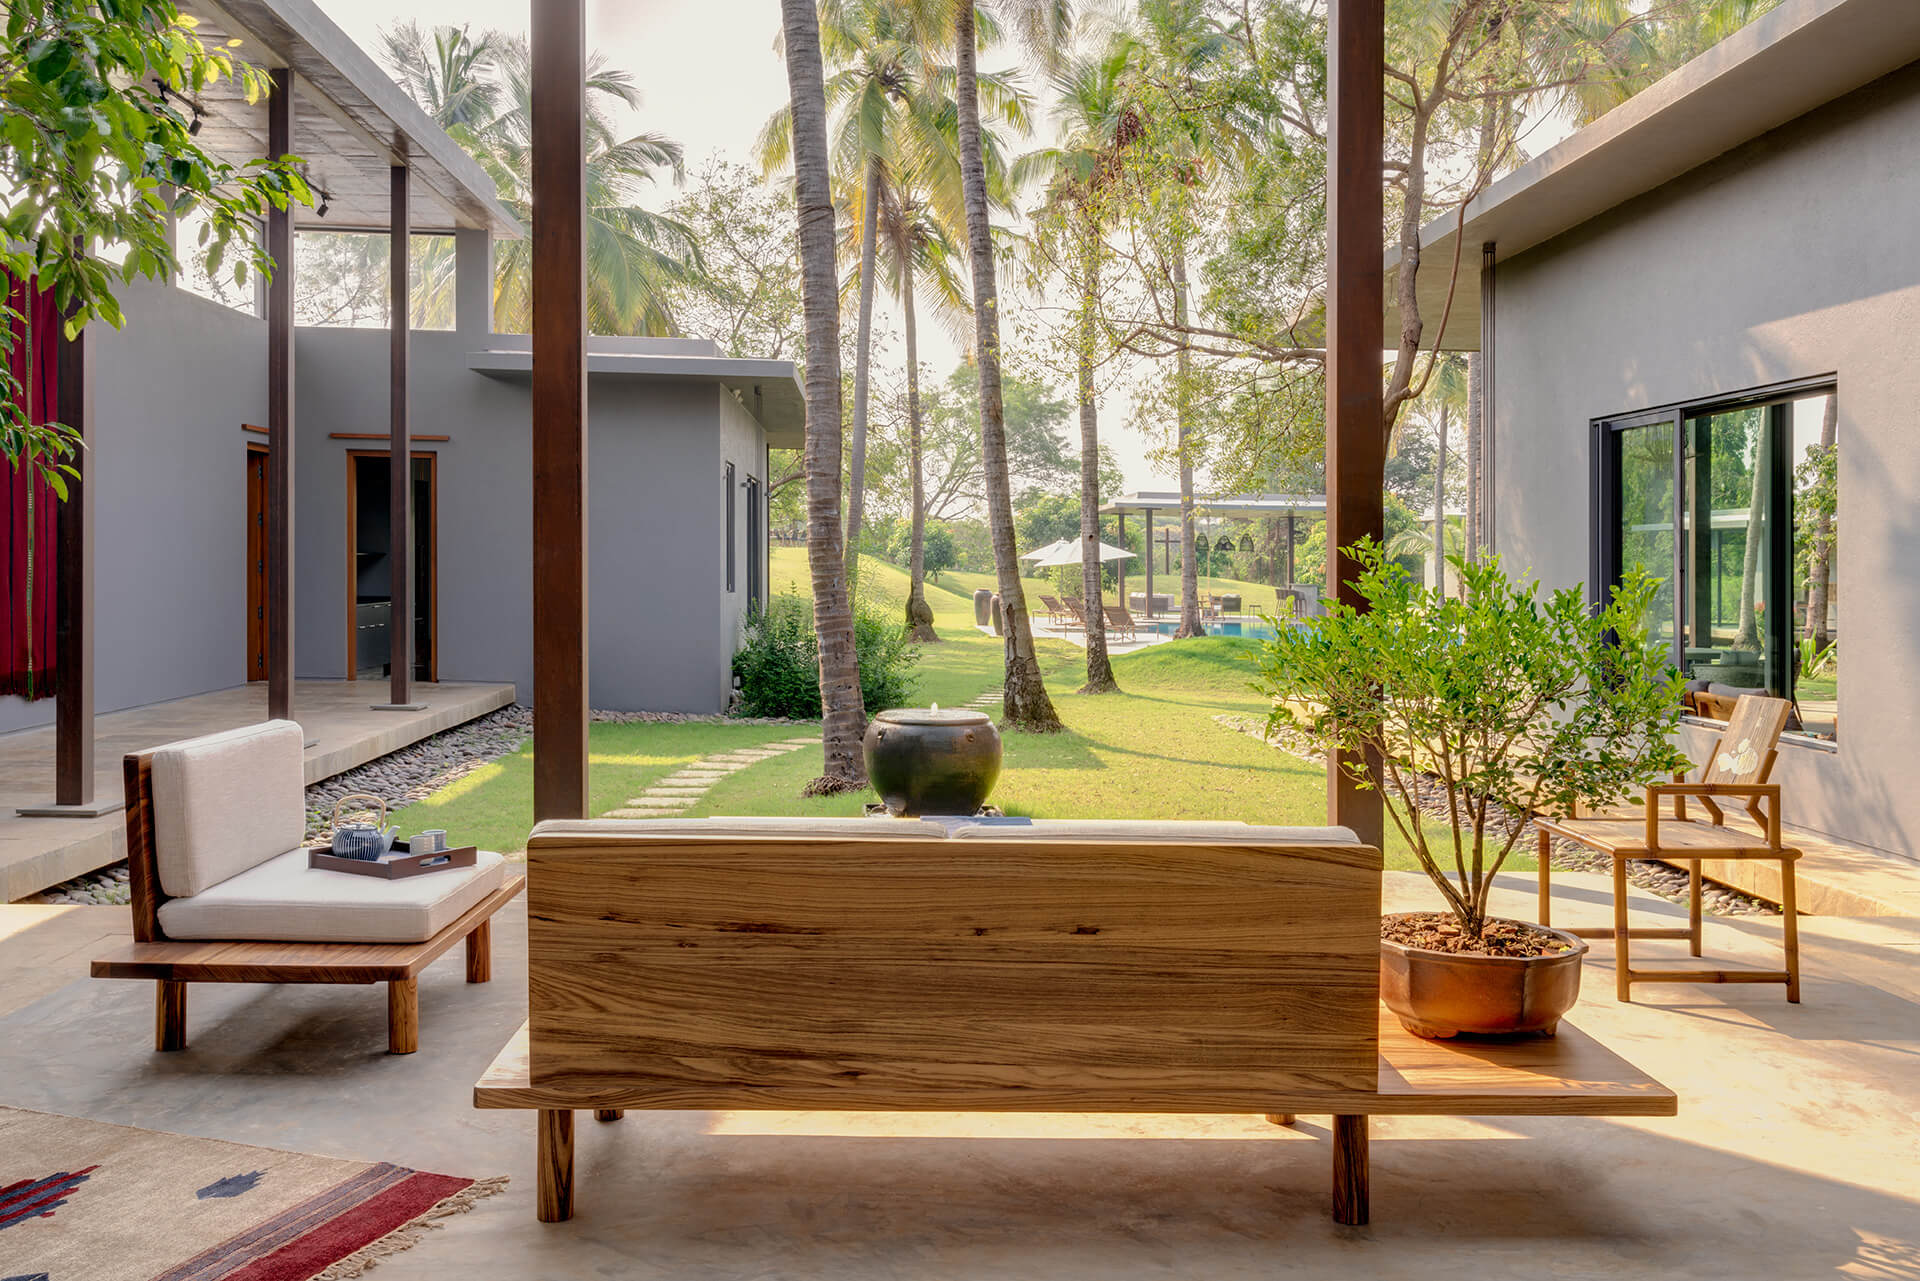 The courtyard with a raised platform that divides the private and public areas | Uminoya – Weekend home in Alibaug | Clay Architecture and Interiors | STIRworld